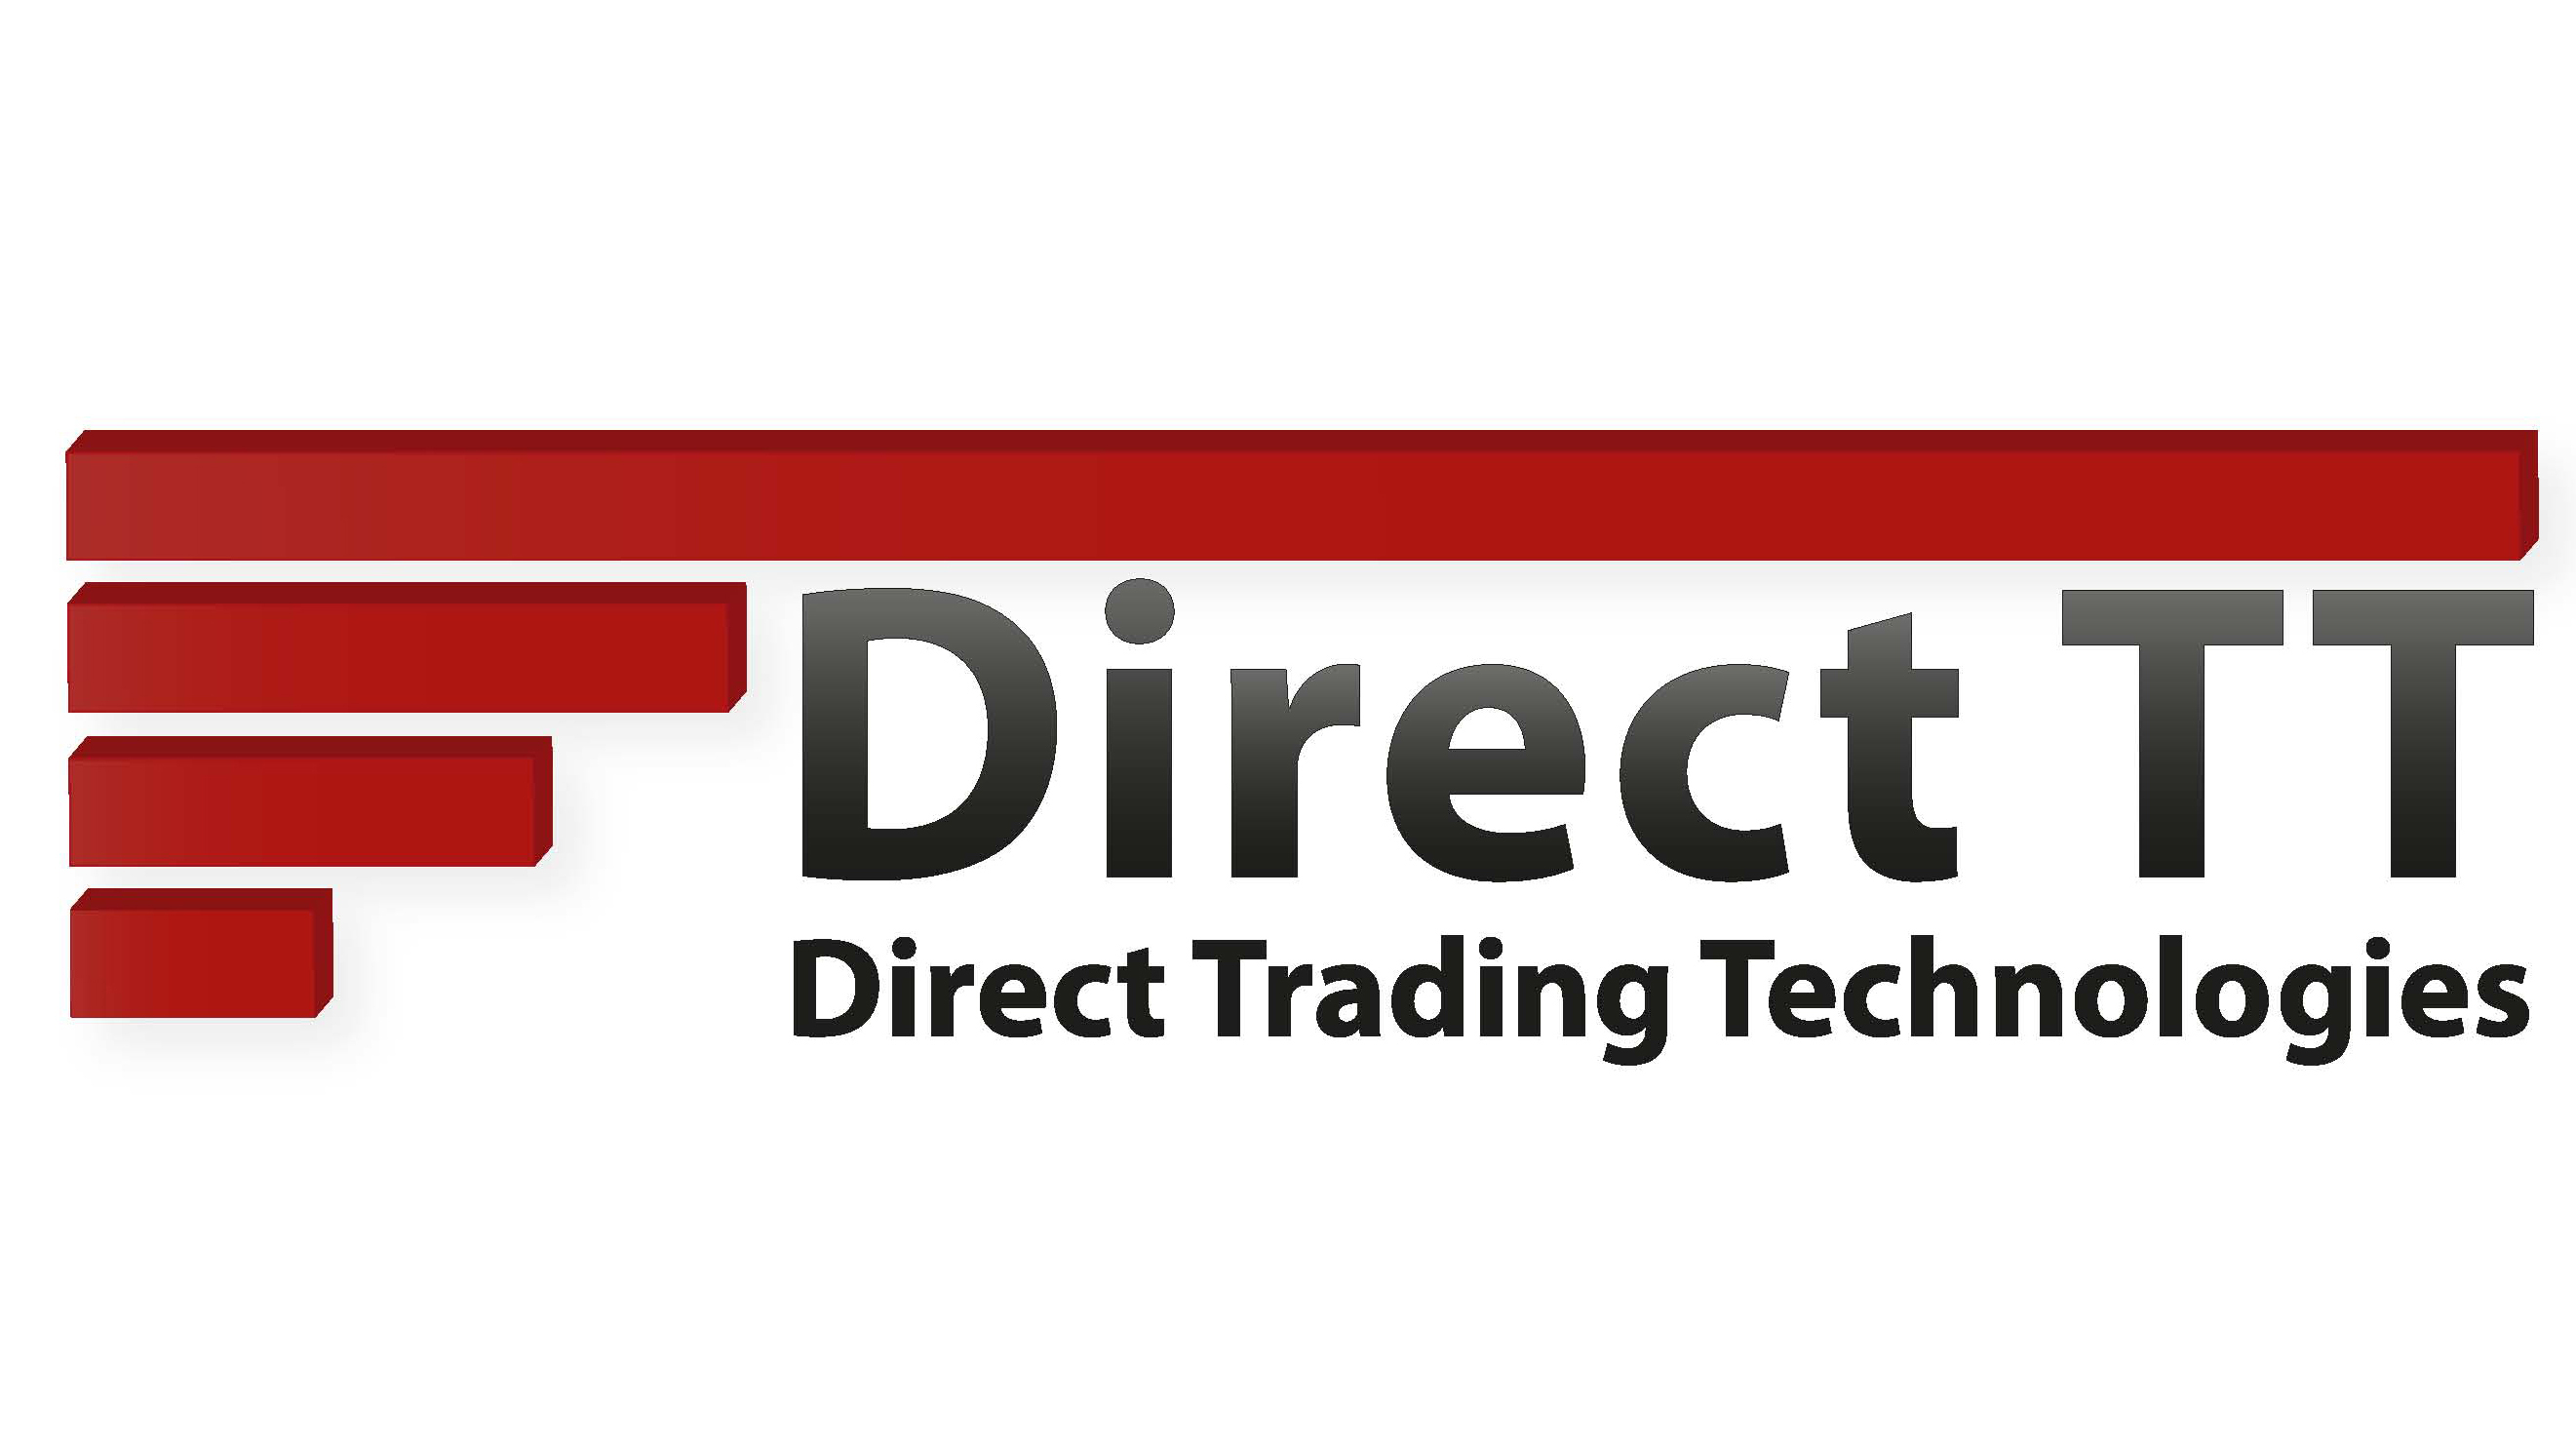 DTT (Direct Trading Technologies)